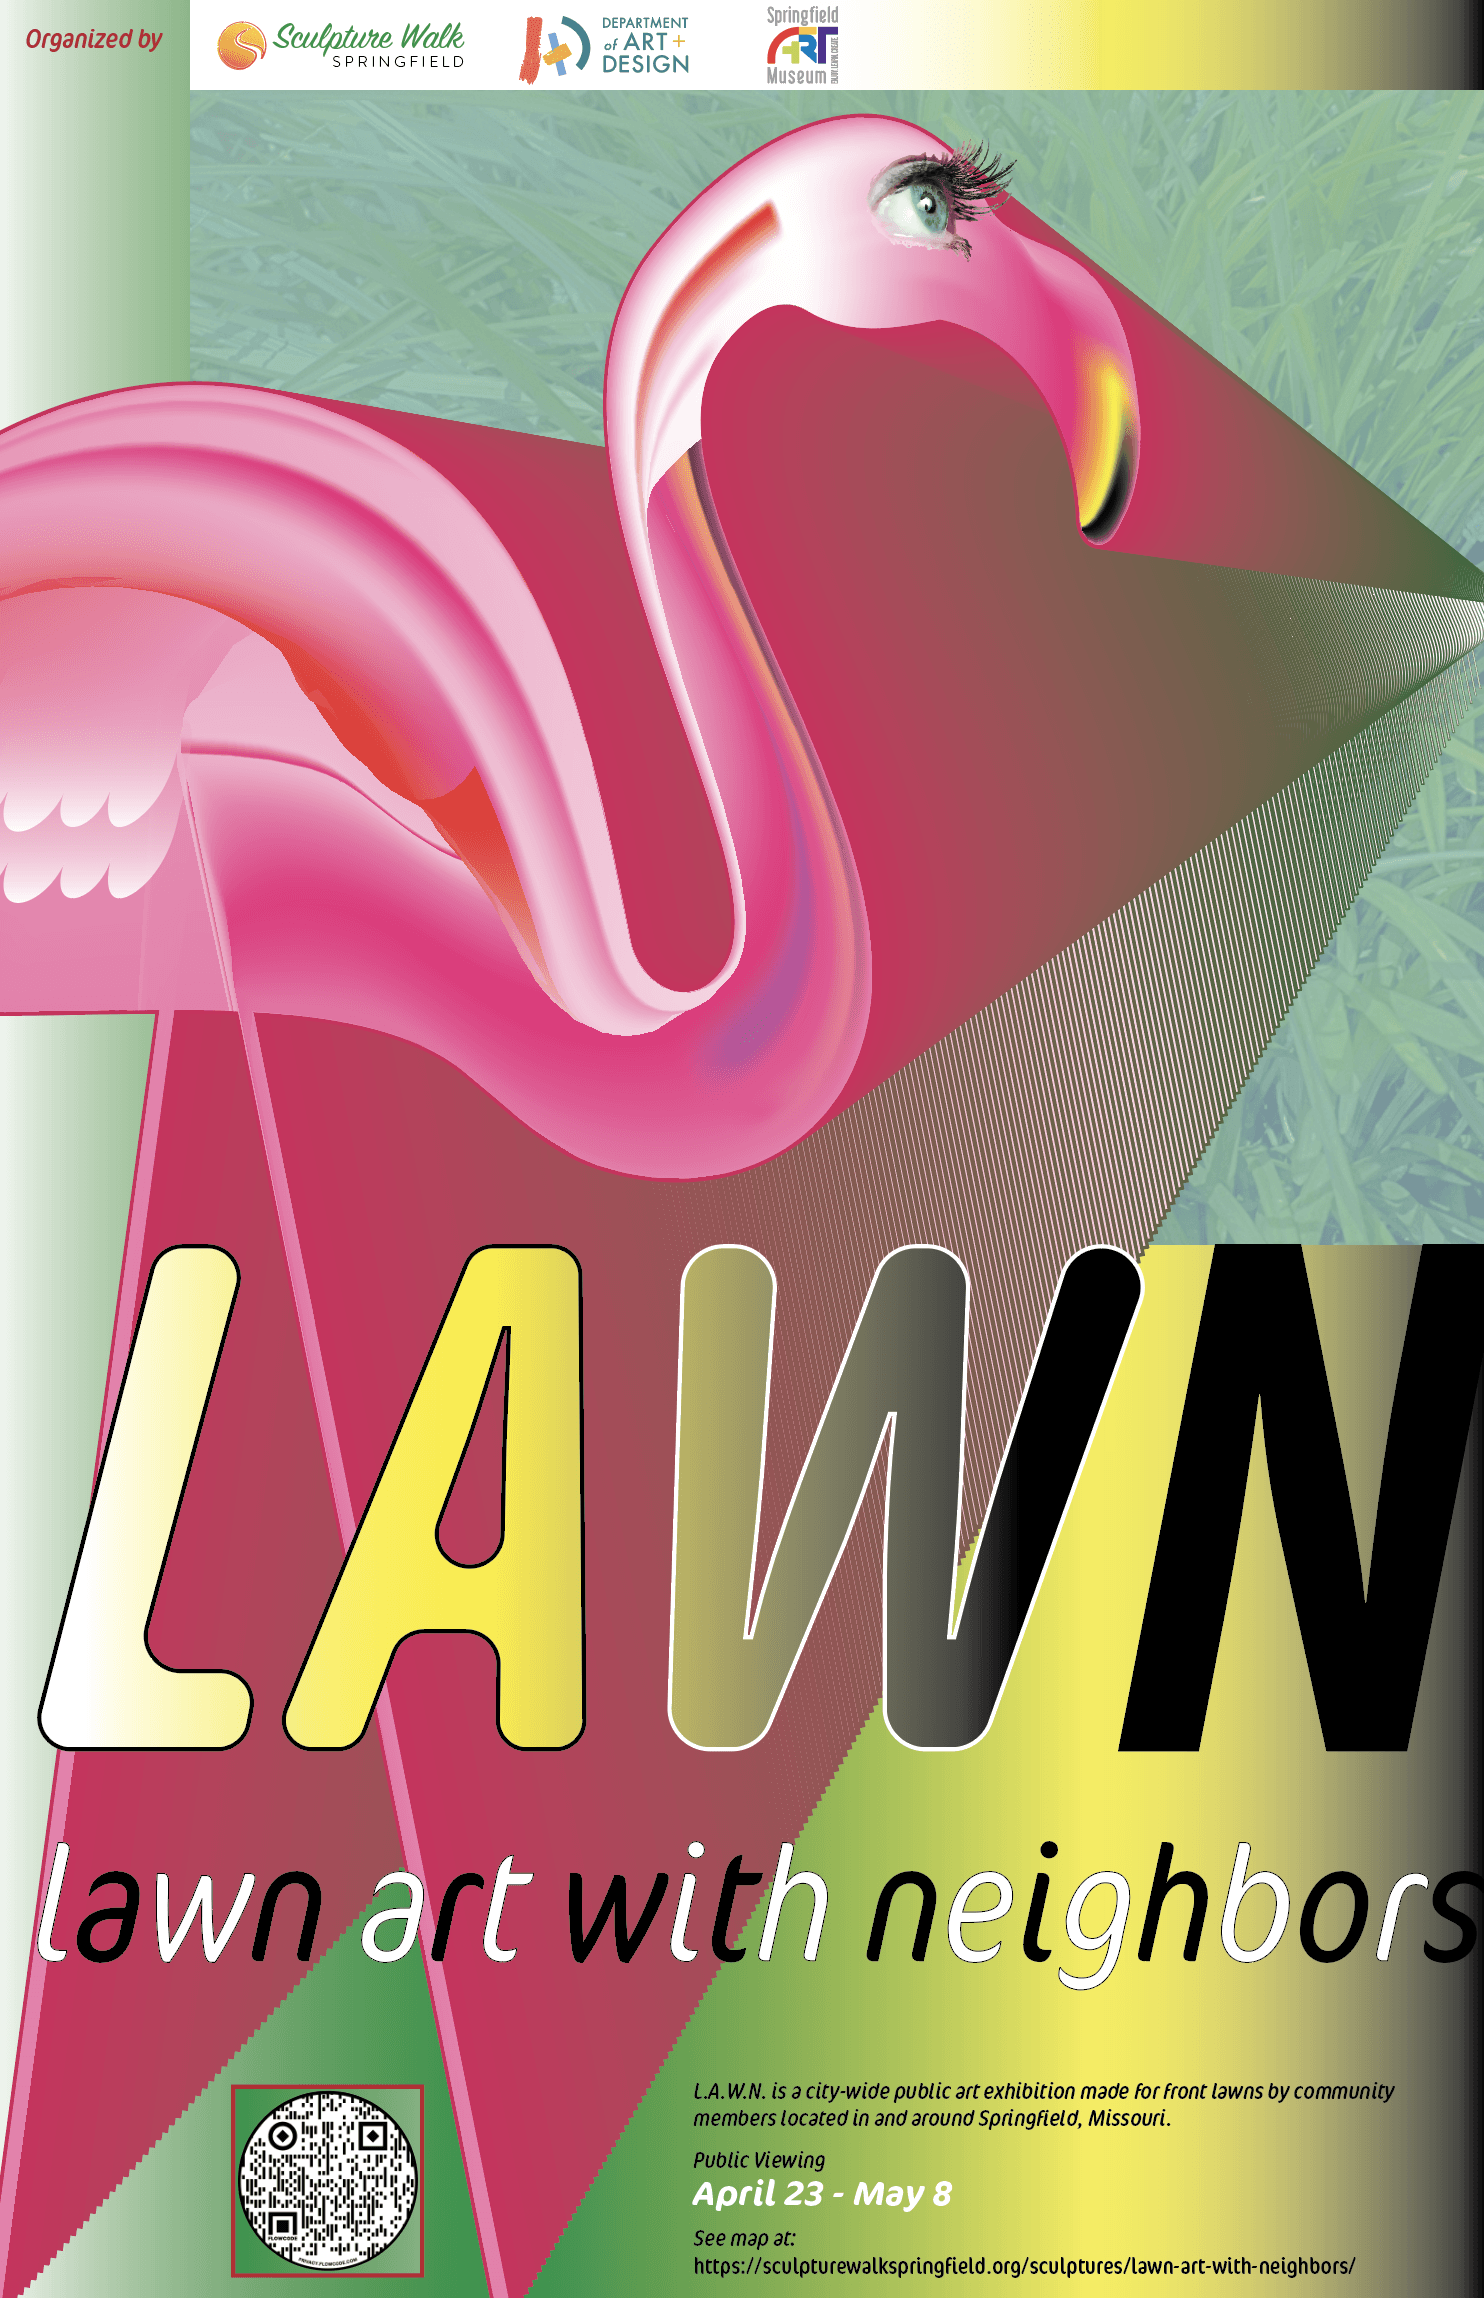 Lawn Art With Neighbors 2021 logo featuring a stylized hot pink lawn flamingo